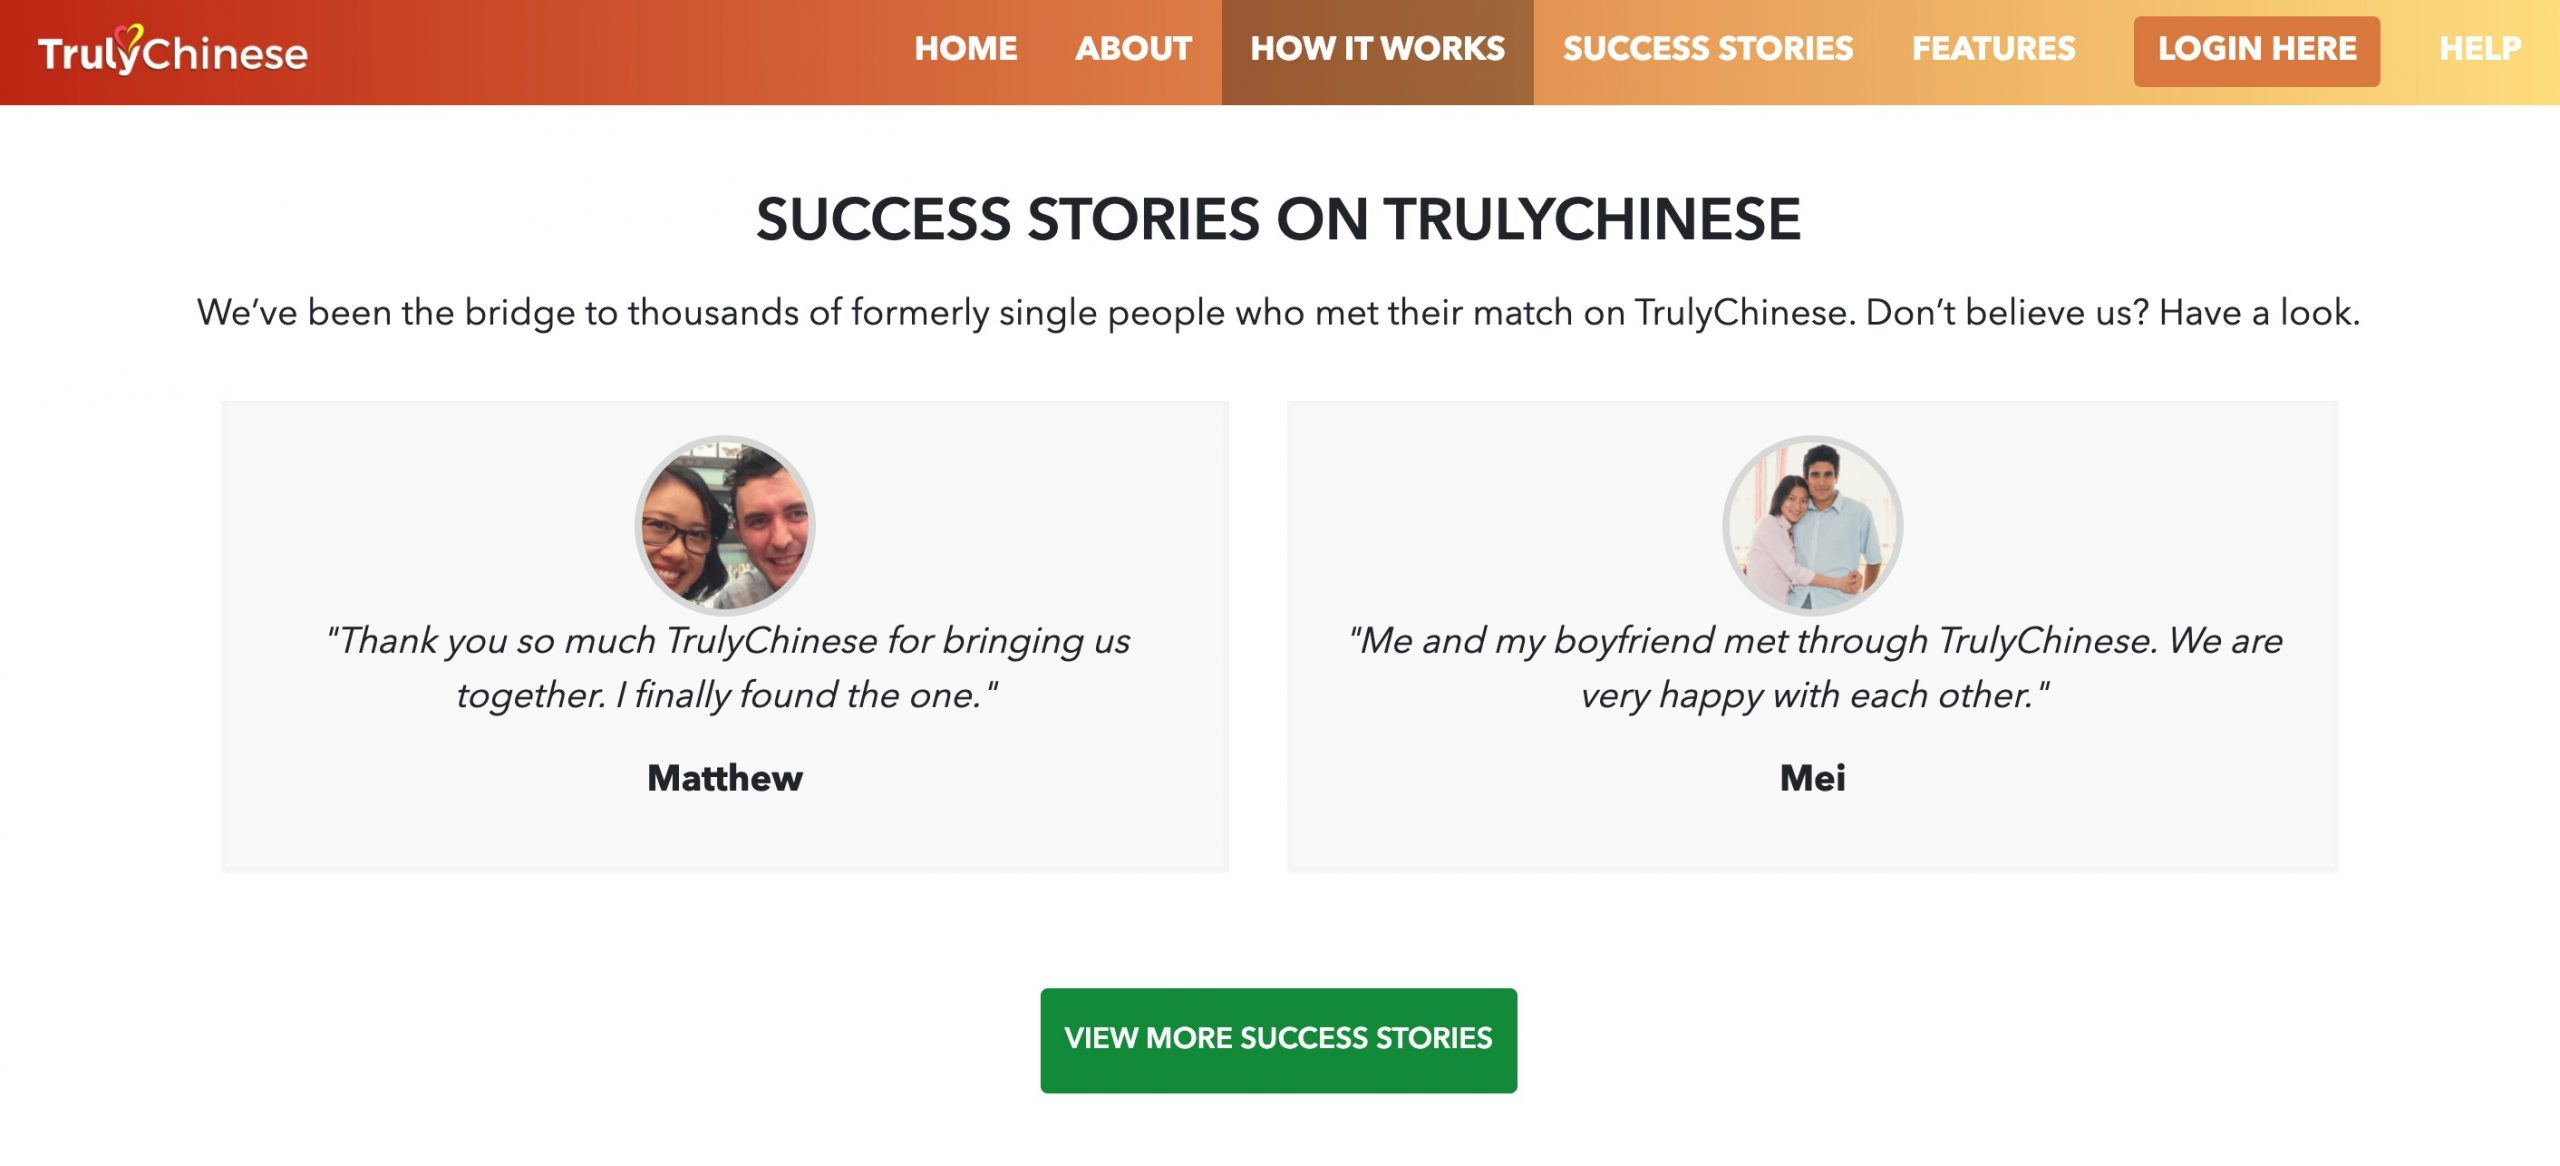 TrulyChinese success stories